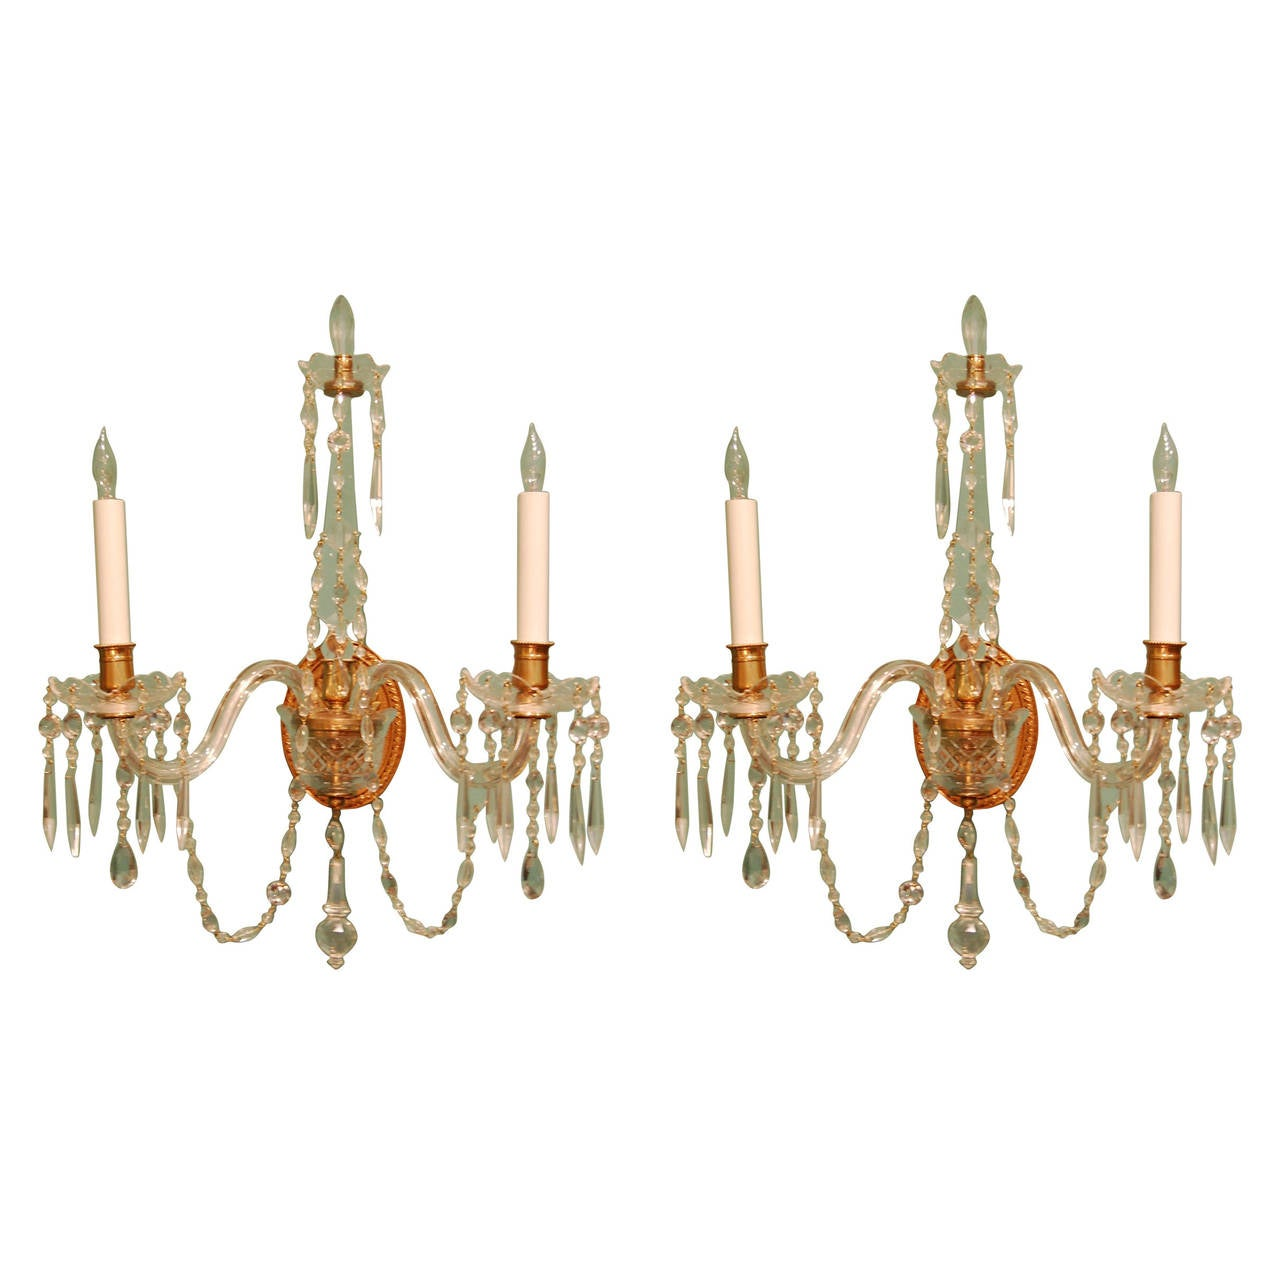 Pair of Crystal Two-Light Wall Sconces with Crystal Drops, Waterford Type, 1920s For Sale at 1stdibs